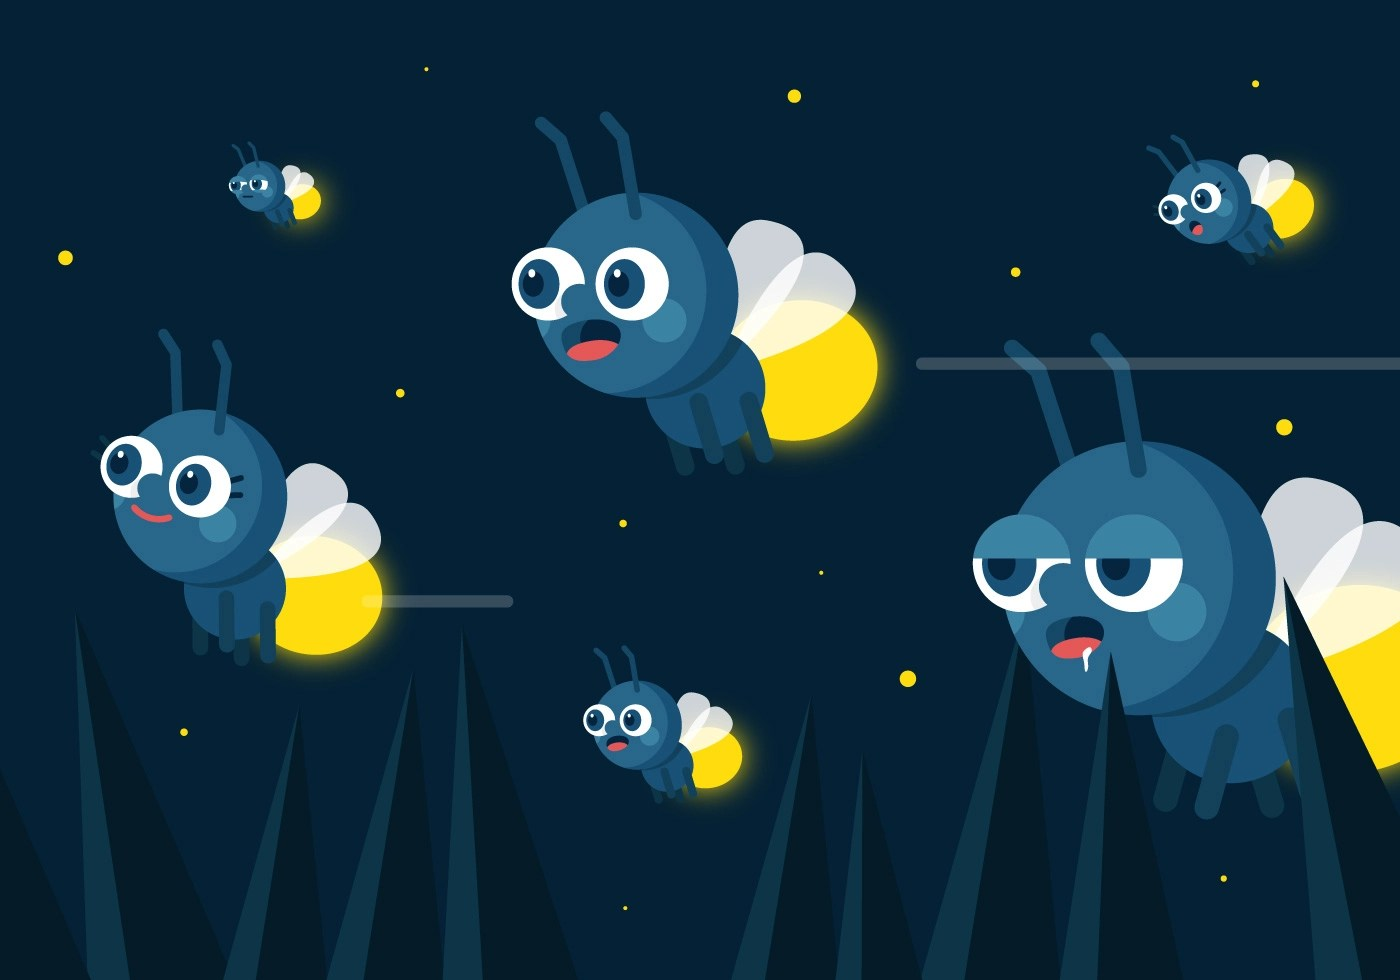 Animation Wallpaper Hd Free Download Vector Fireflies Download Free Vector Art Stock